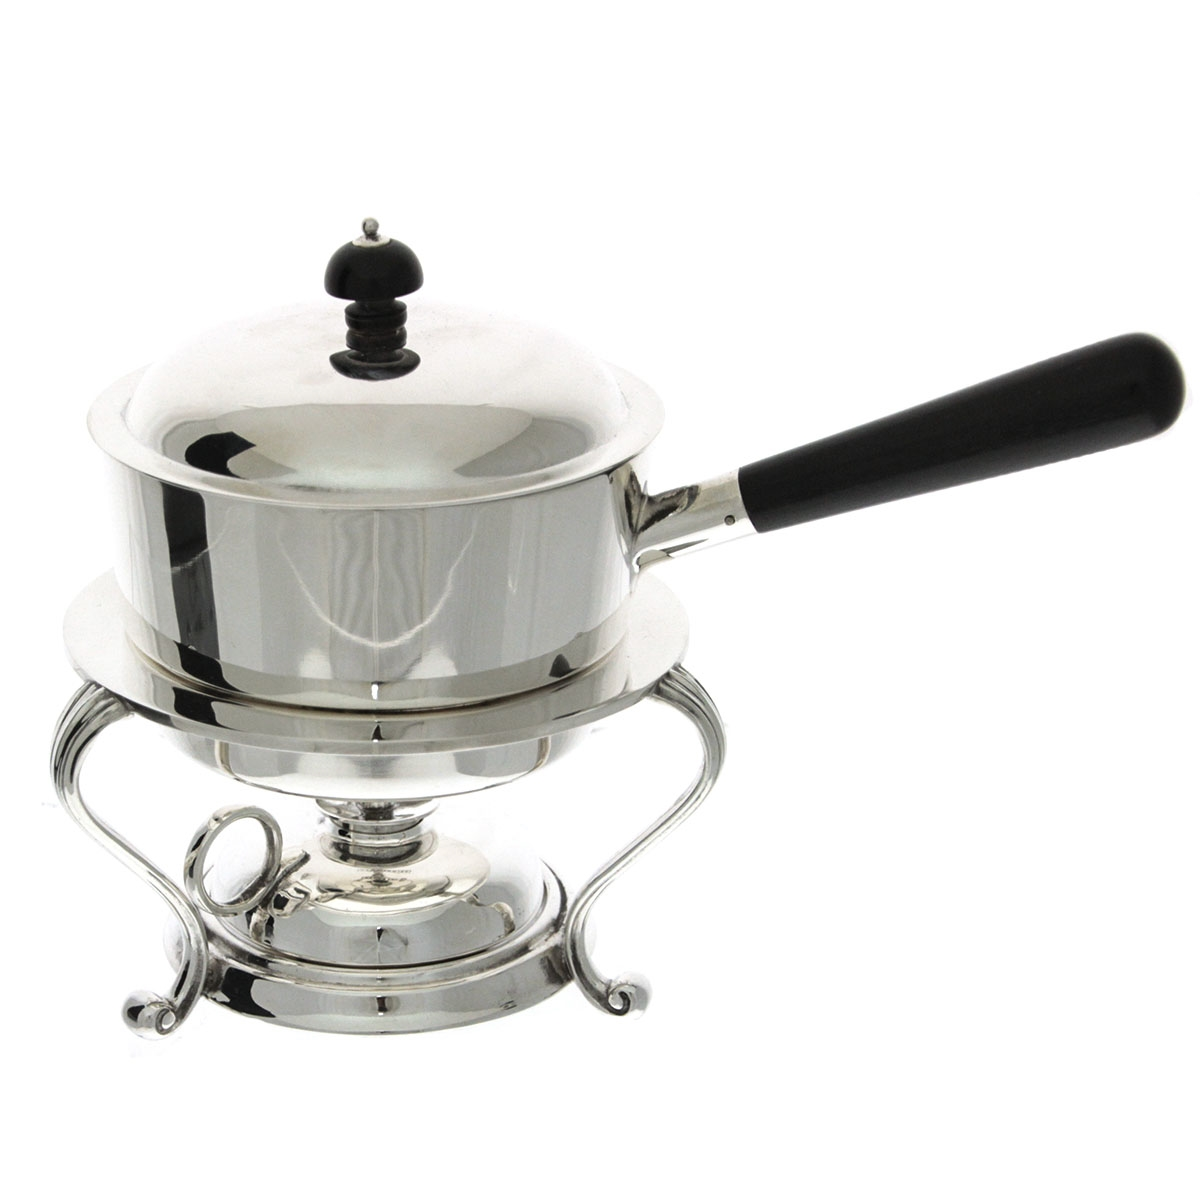 Silver Plated Egg Warmer Coddler Server Atkin Brothers